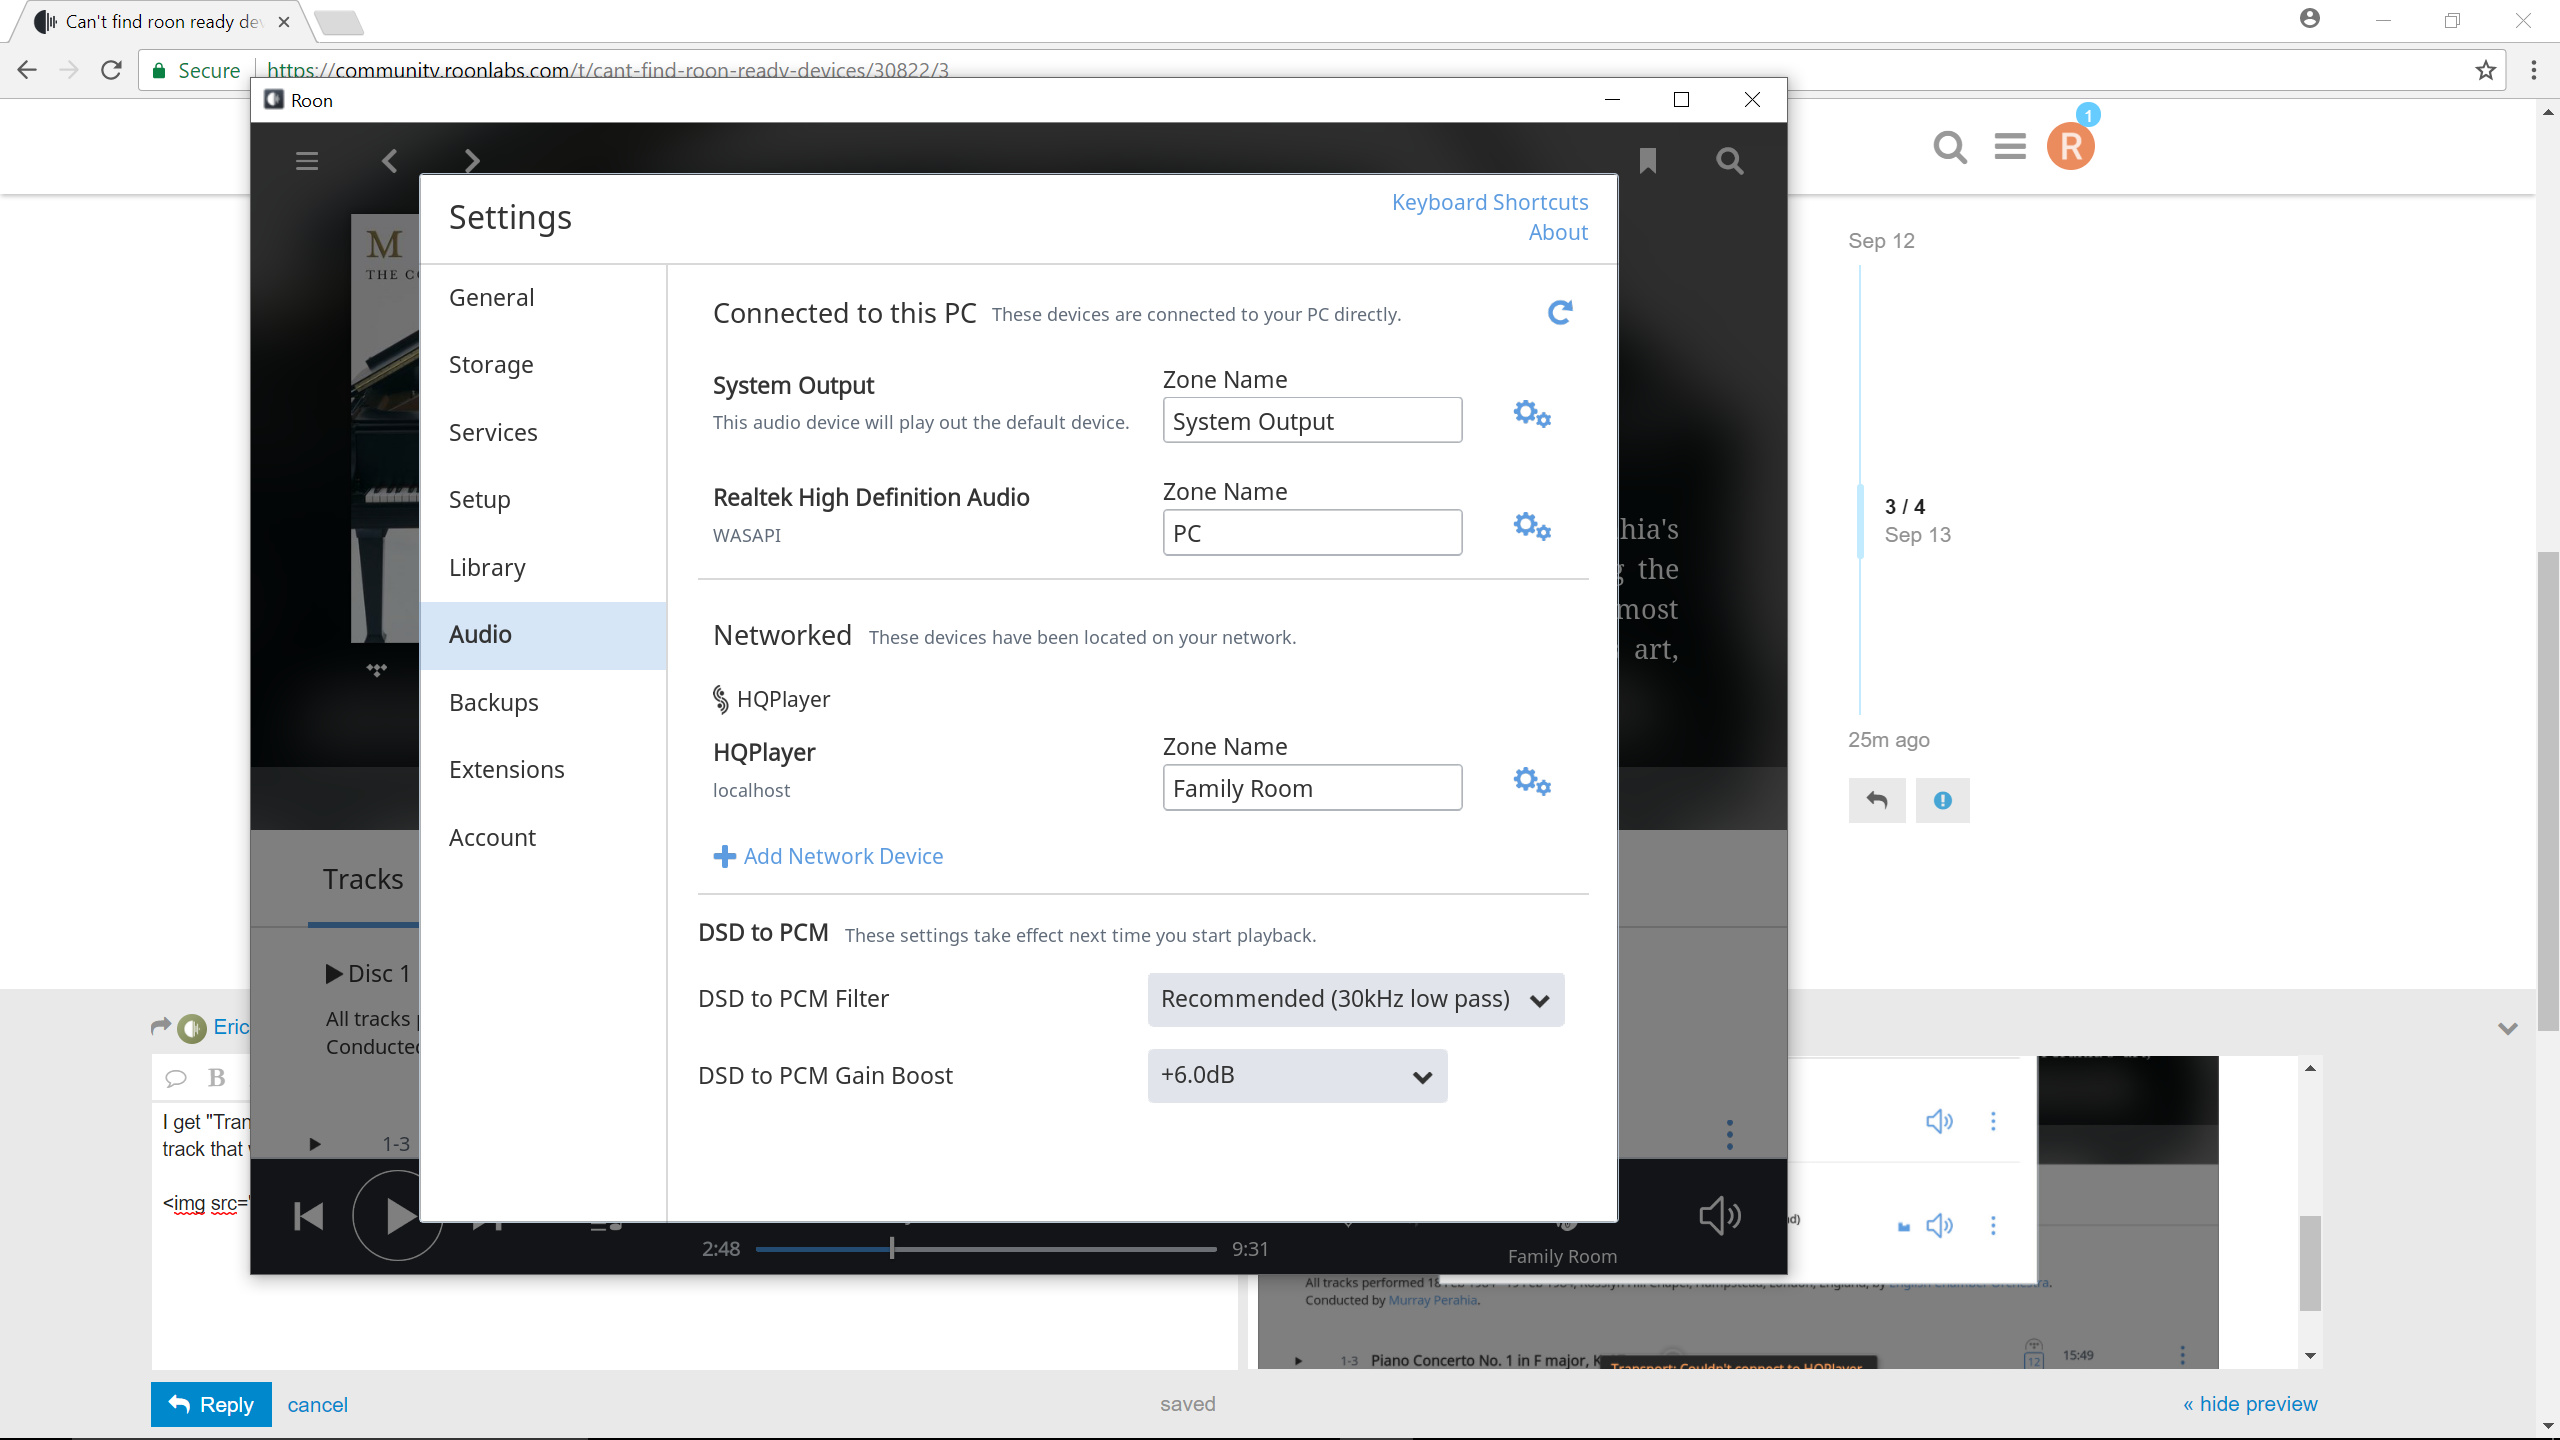 Can't find roon ready devices - Support - Roon Labs Community